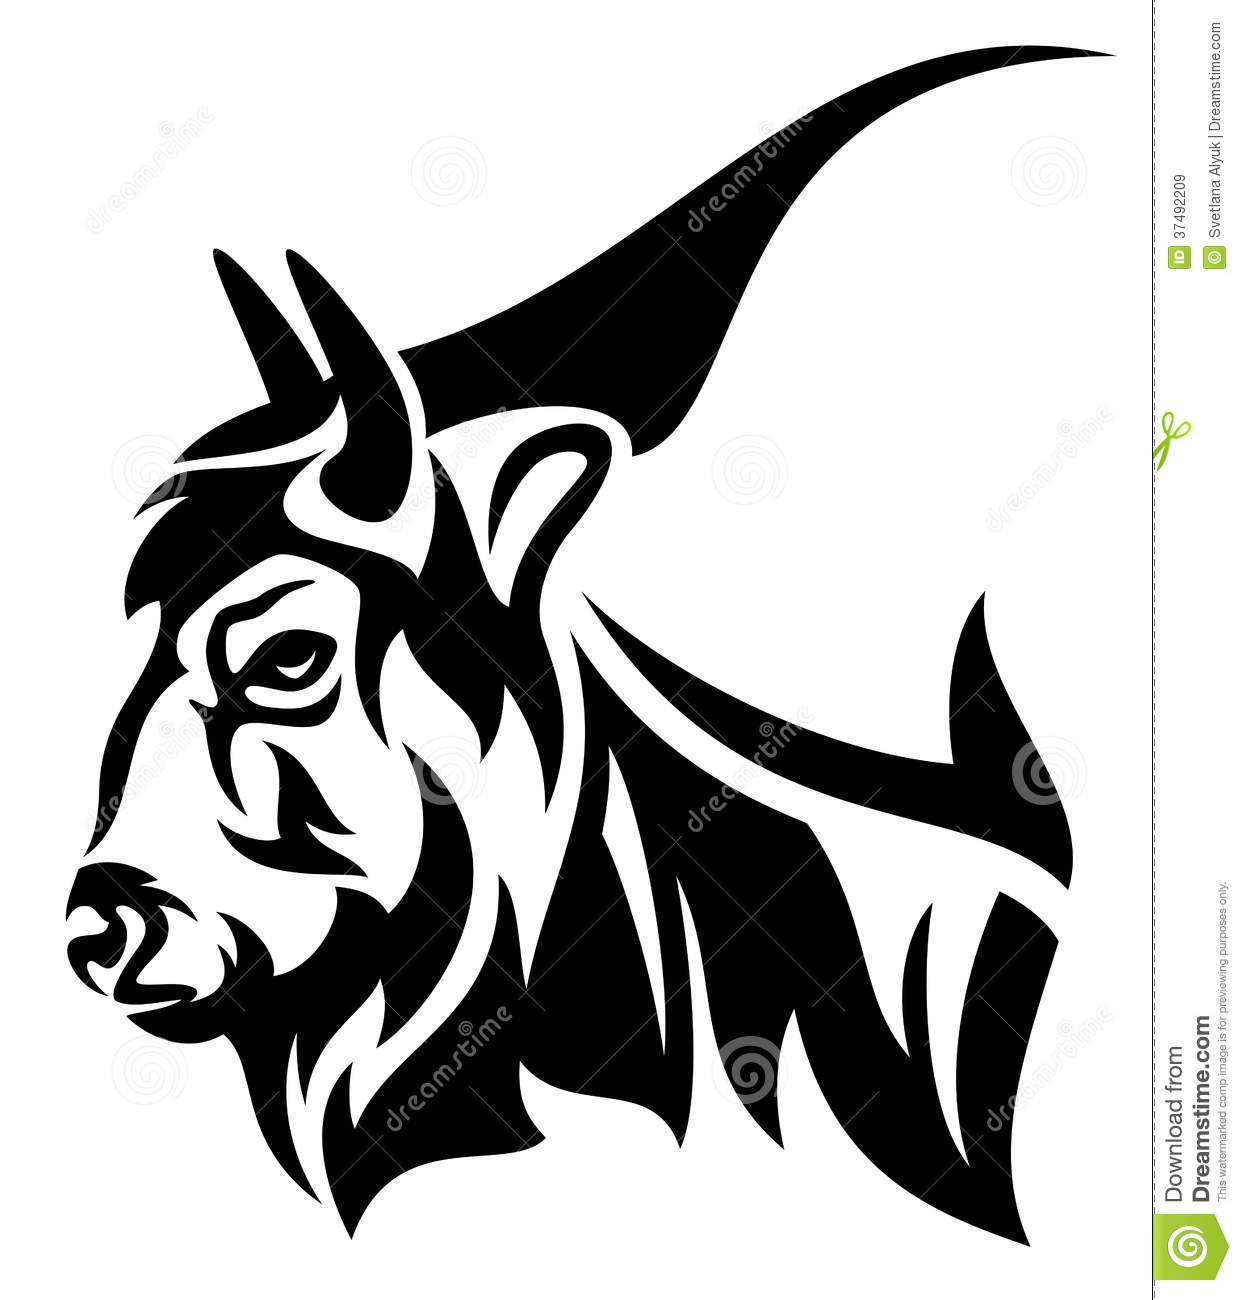 Bison head clipart clip art library stock Bison head clipart 4 » Clipart Portal clip art library stock